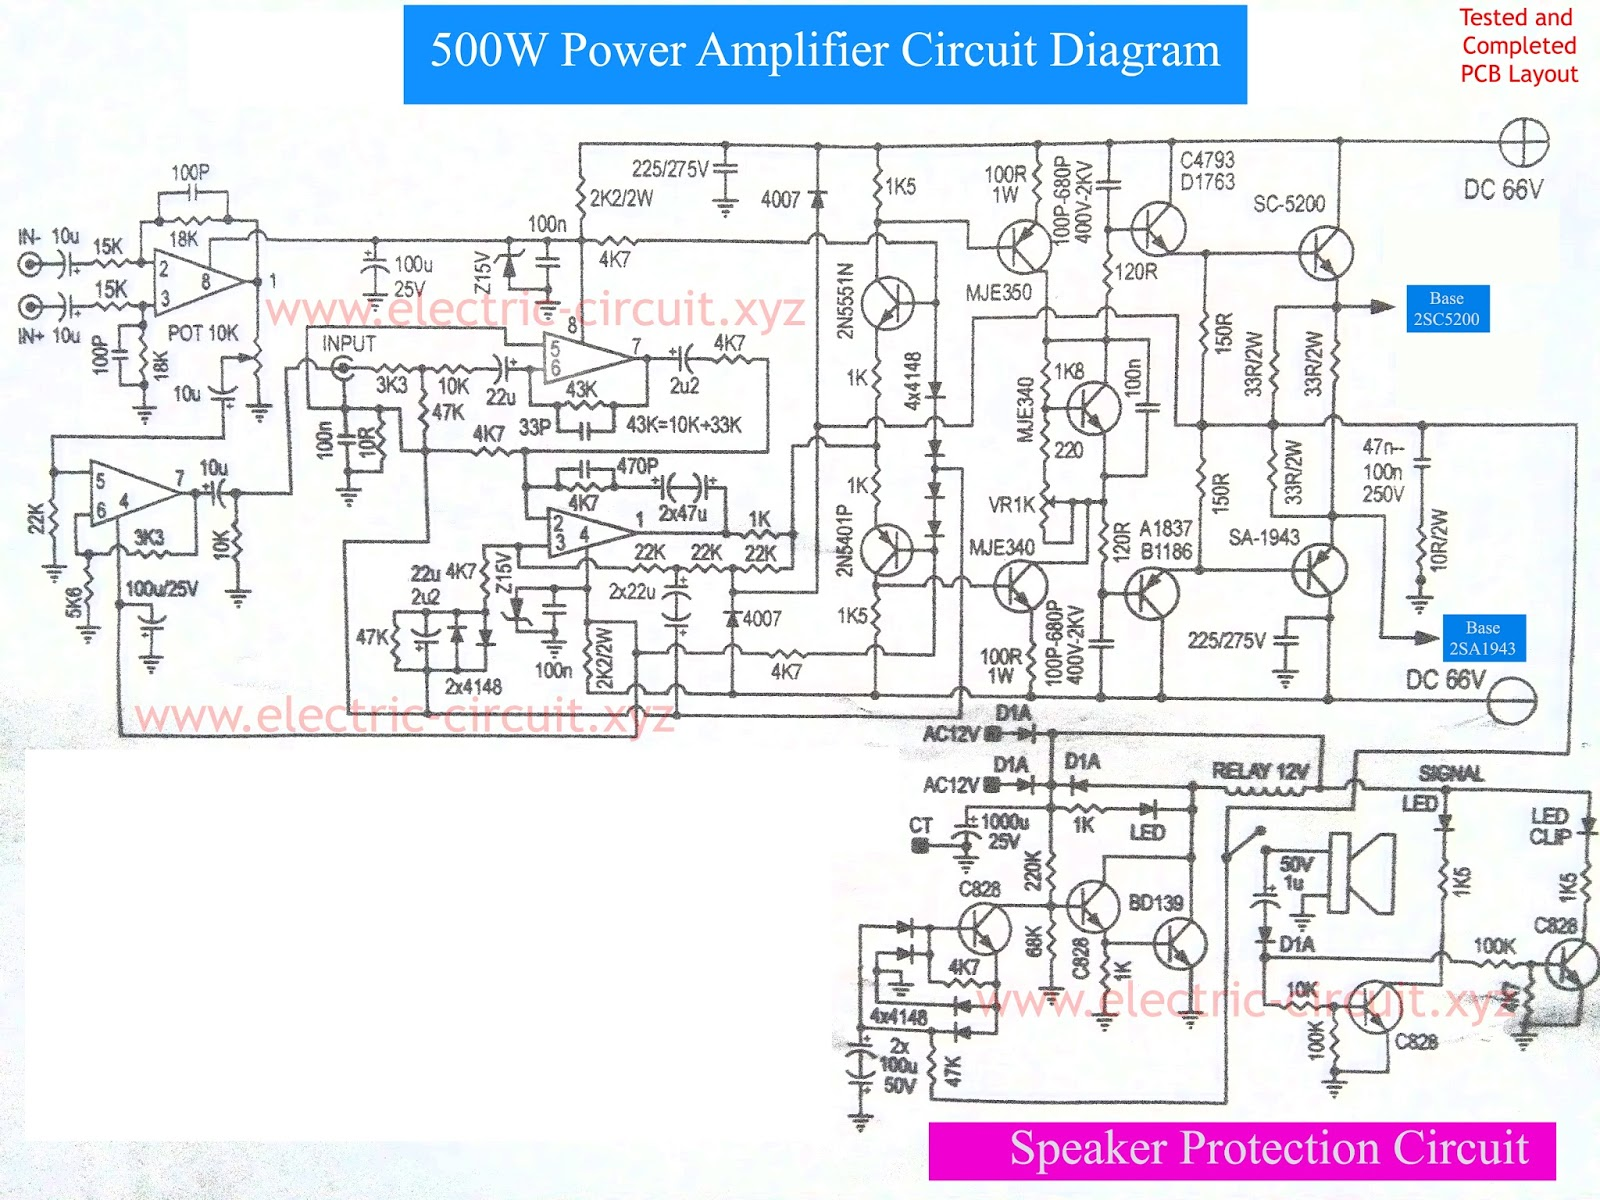 2000w Power Amplifier Circuit Diagram Bmw E60 Audio Wiring 300w With 2n773 Schematic Diagrams Library